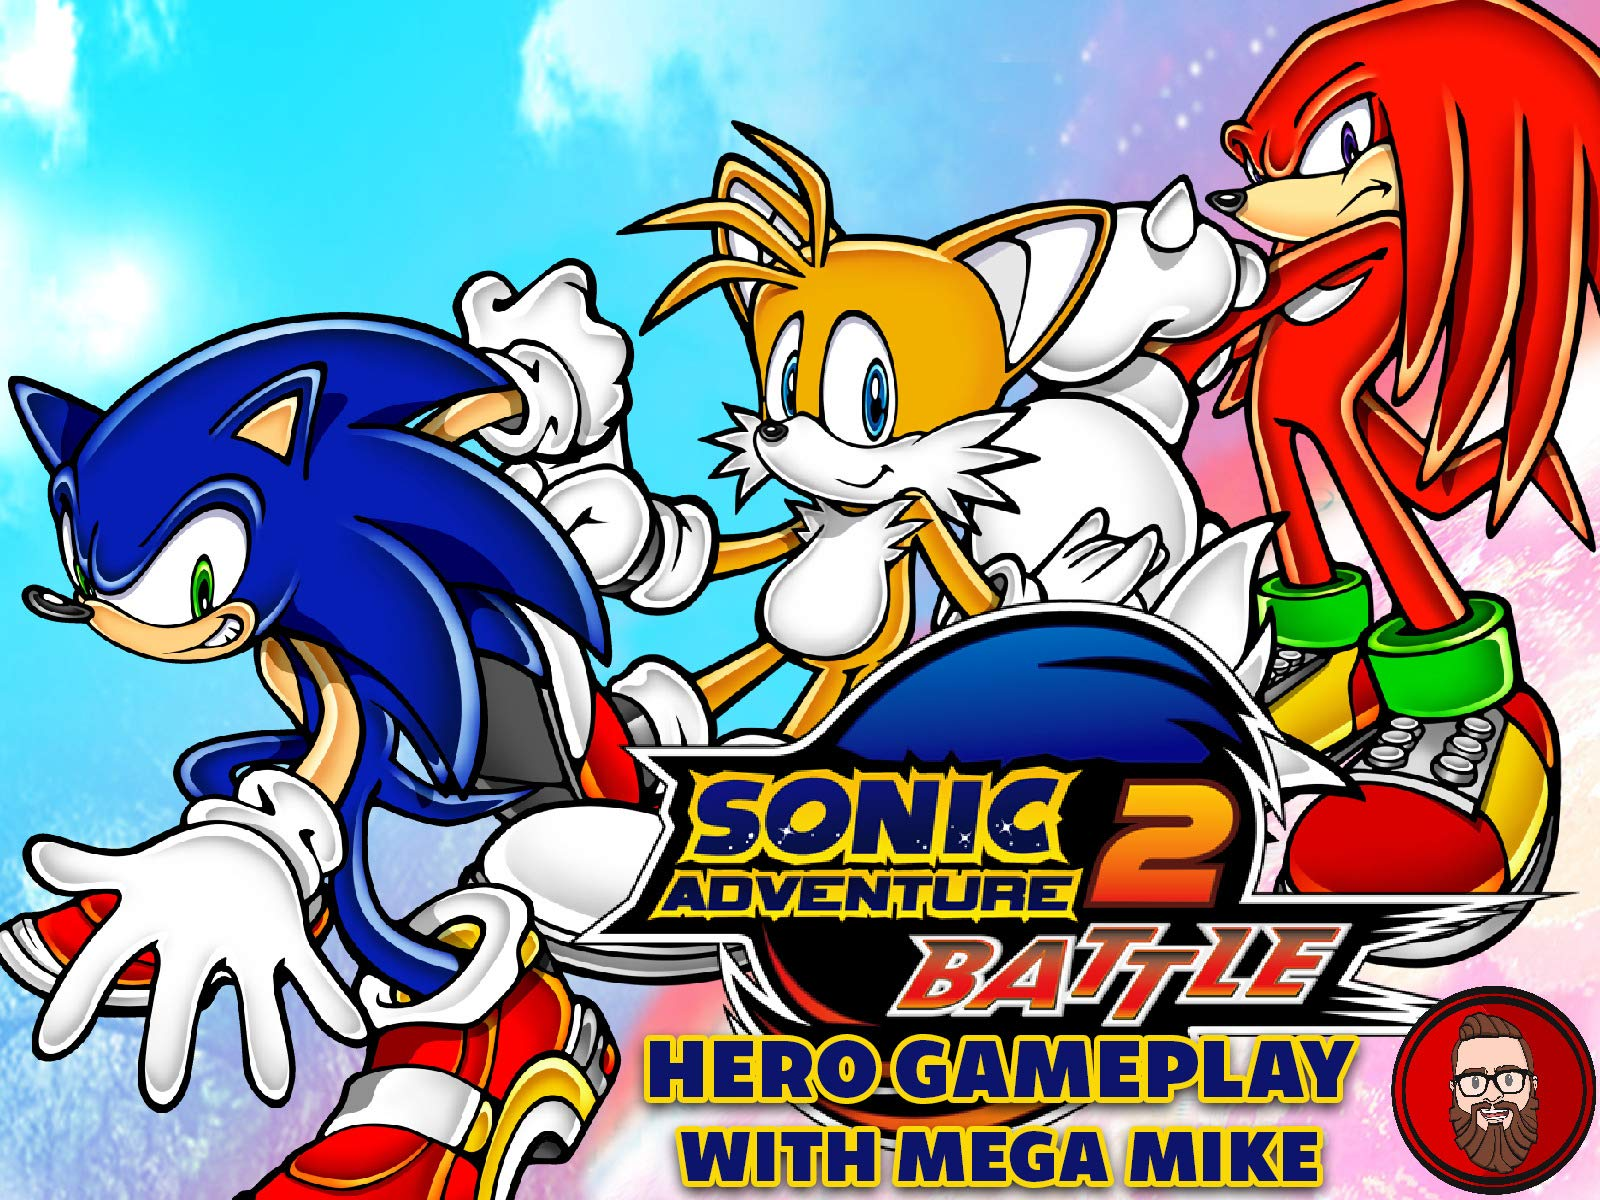 Watch Sonic Adventure 2 Battle Hero Gameplay With Mega Mike